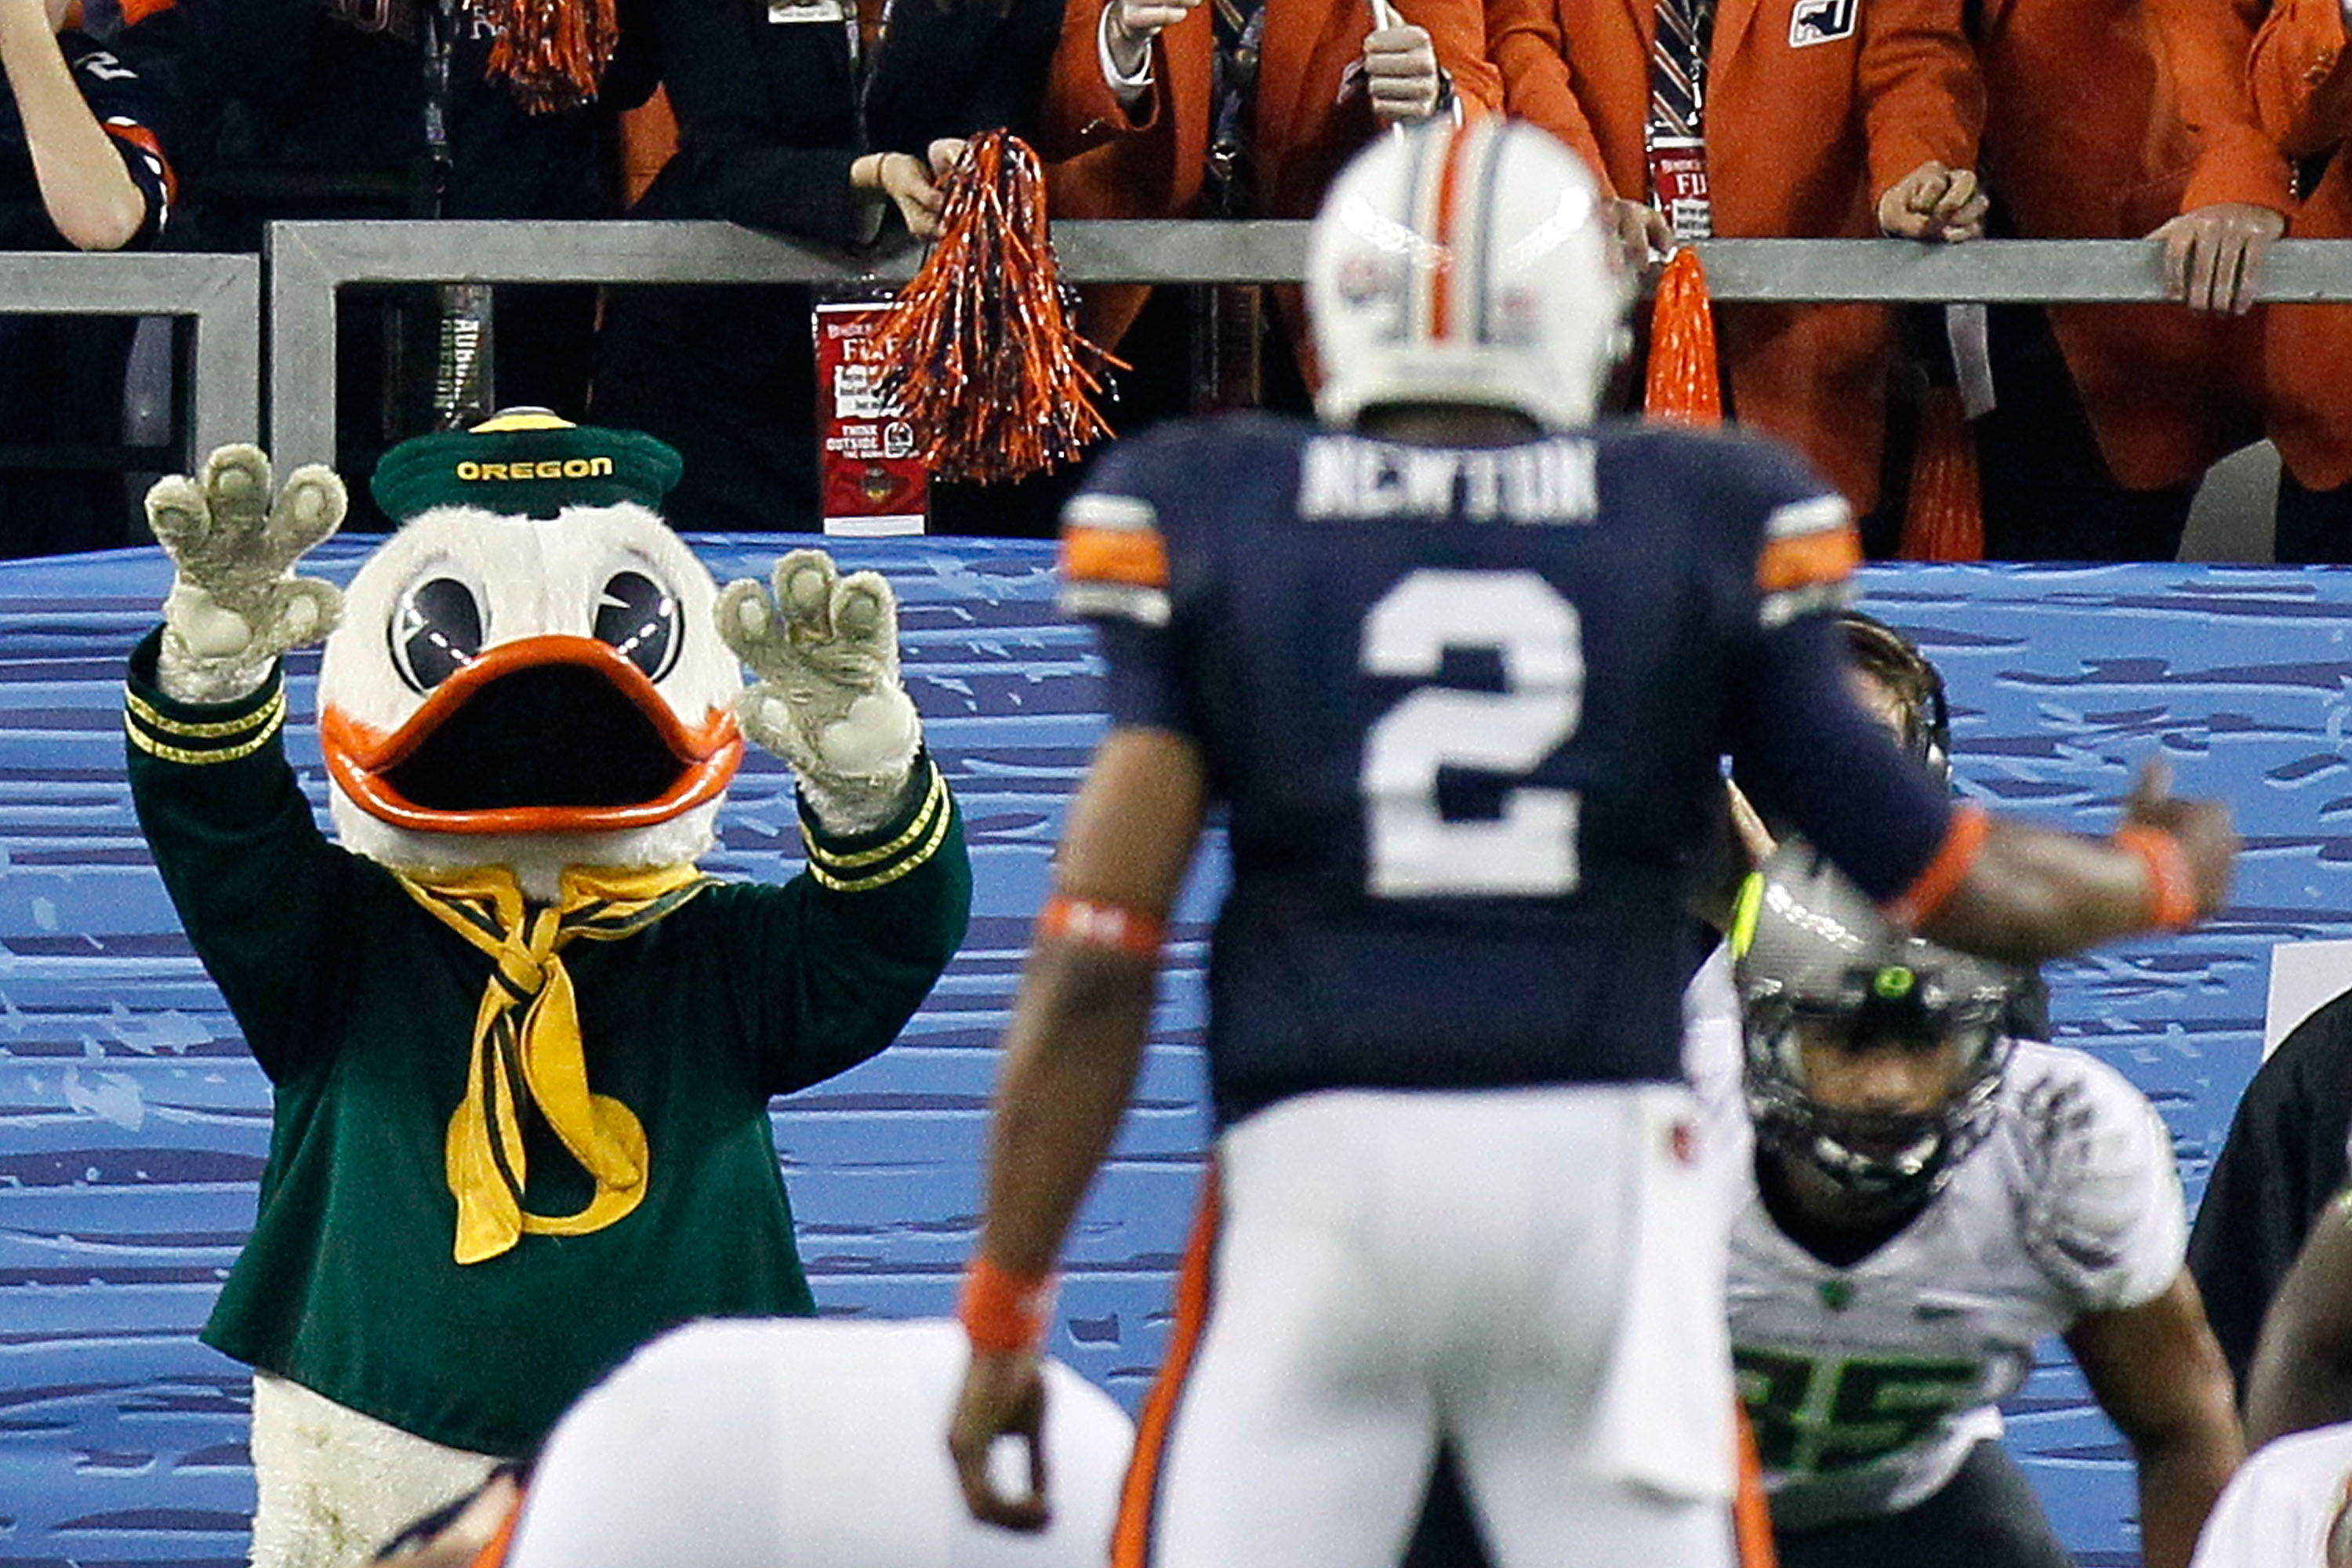 GLENDALE, AZ - JANUARY 10:  The Oregon Duck mocks Cameron Newton #2 of the Auburn Tigers  during the Tostitos BCS National Championship Game at University of Phoenix Stadium on January 10, 2011 in Glendale, Arizona.  (Photo by Kevin C. Cox/Getty Images)